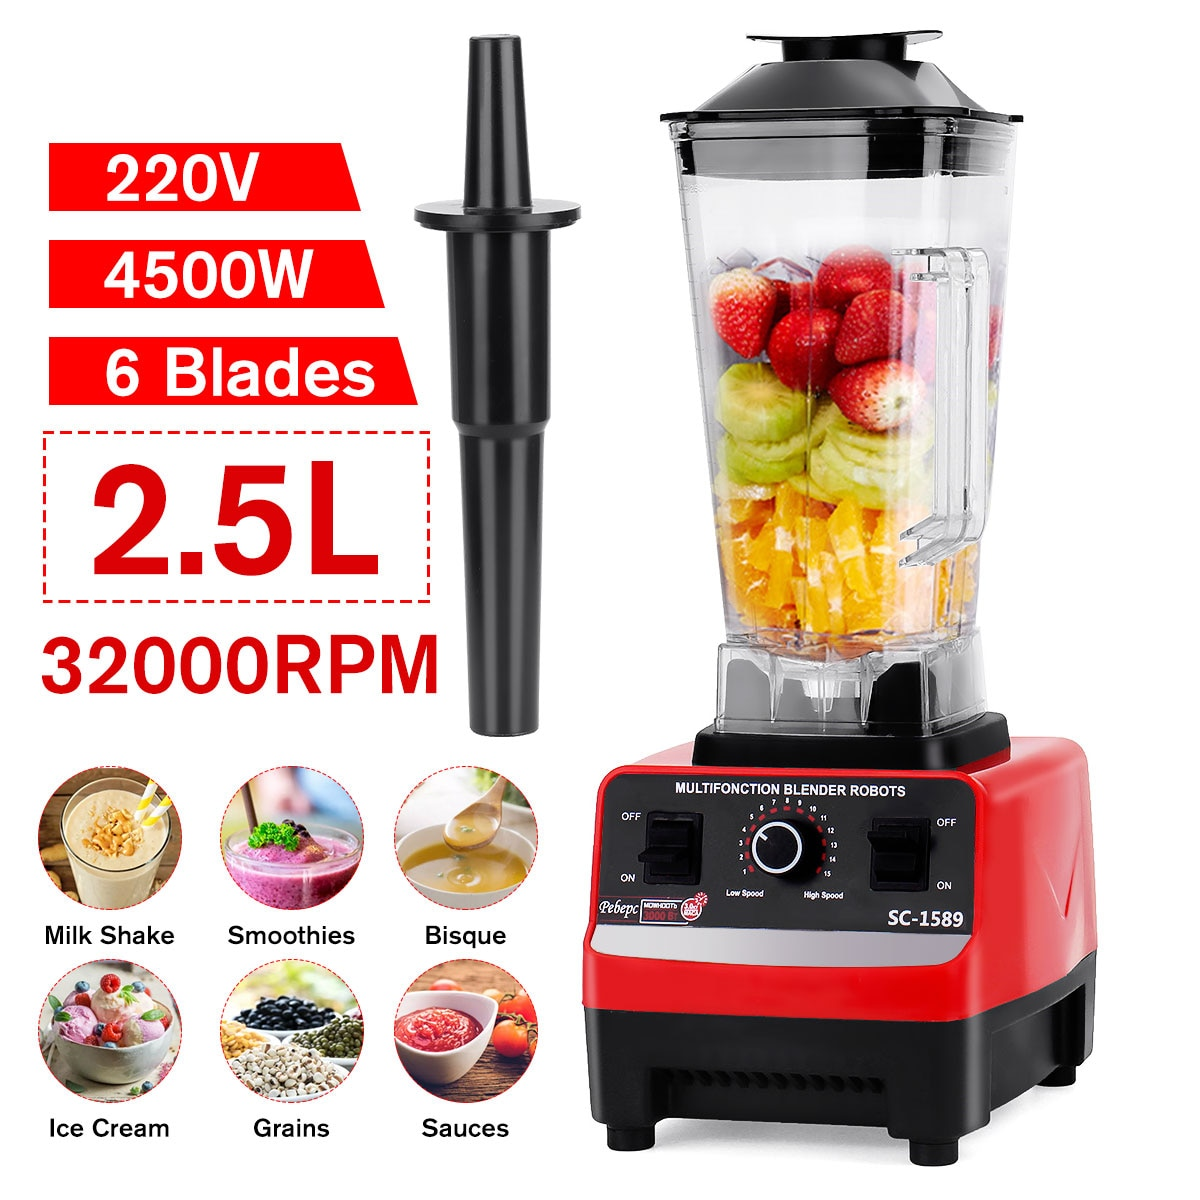 2.5L 4500W BPA Free Professional Heavy Duty Commercial Timer Blender Mixer Juicer Food Processor Ice Smoothies Crusher Kitchen zk 1000w heavy duty commercial and household grade blender mixer juicer fruit food processor ice smoothies 2l